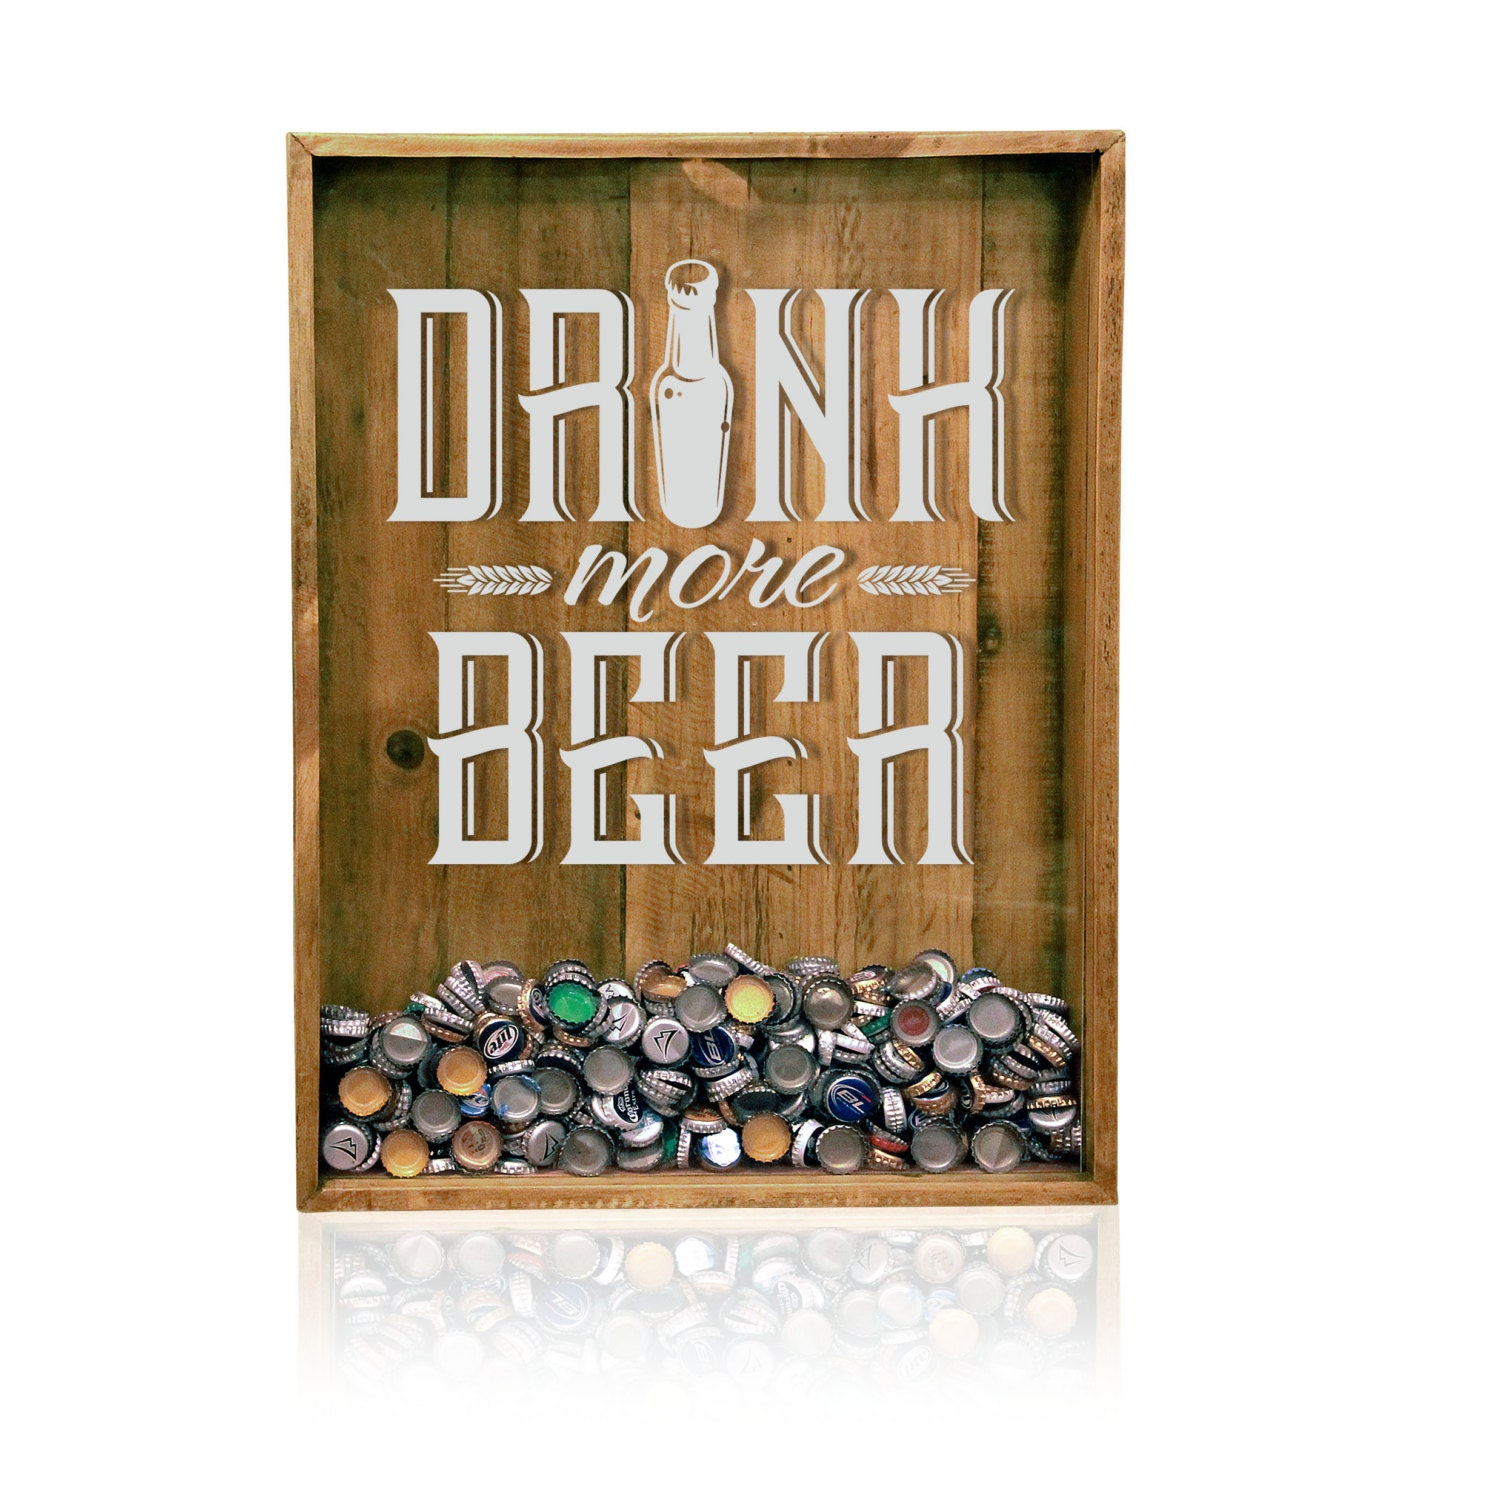 18x24 reclaimed wood beer bottle cap holder wall decor for Beer bottle picture frame